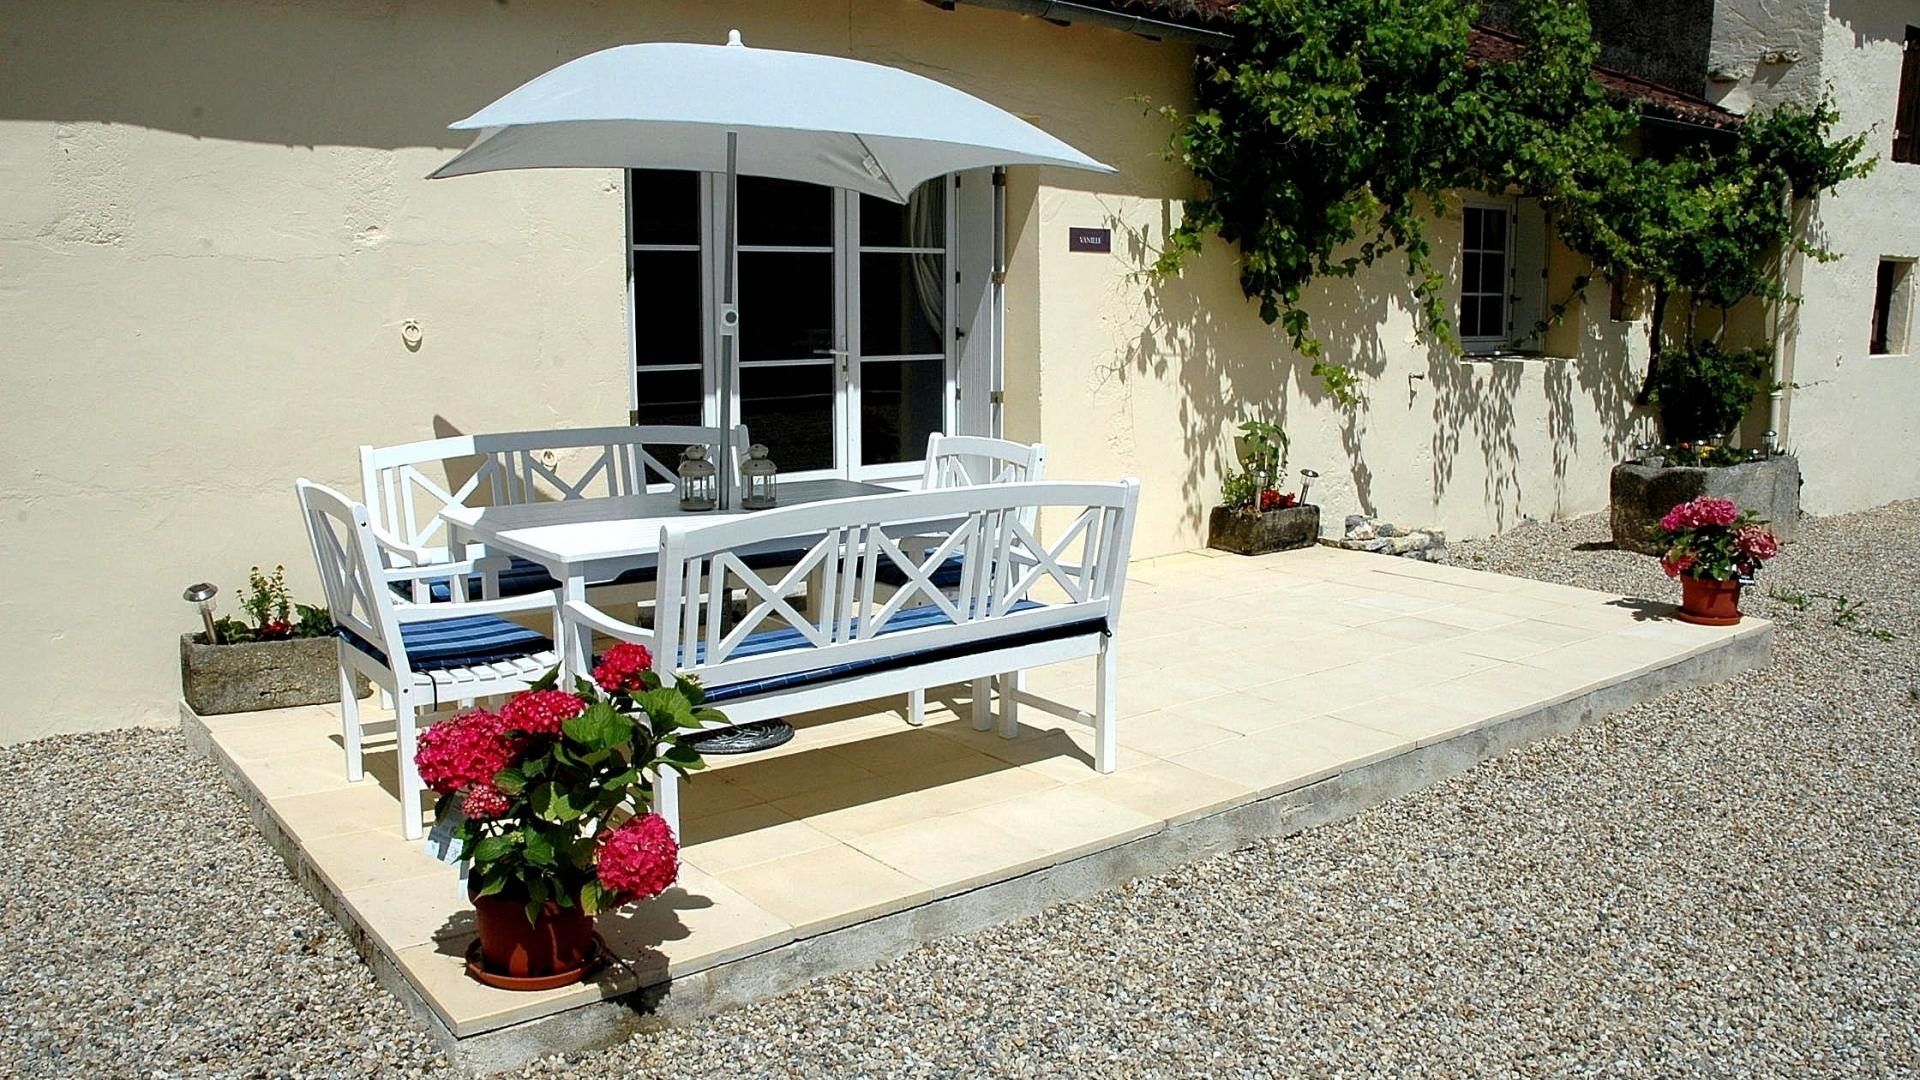 2 Bedroom Gite complex in Poitou-Charentes, France